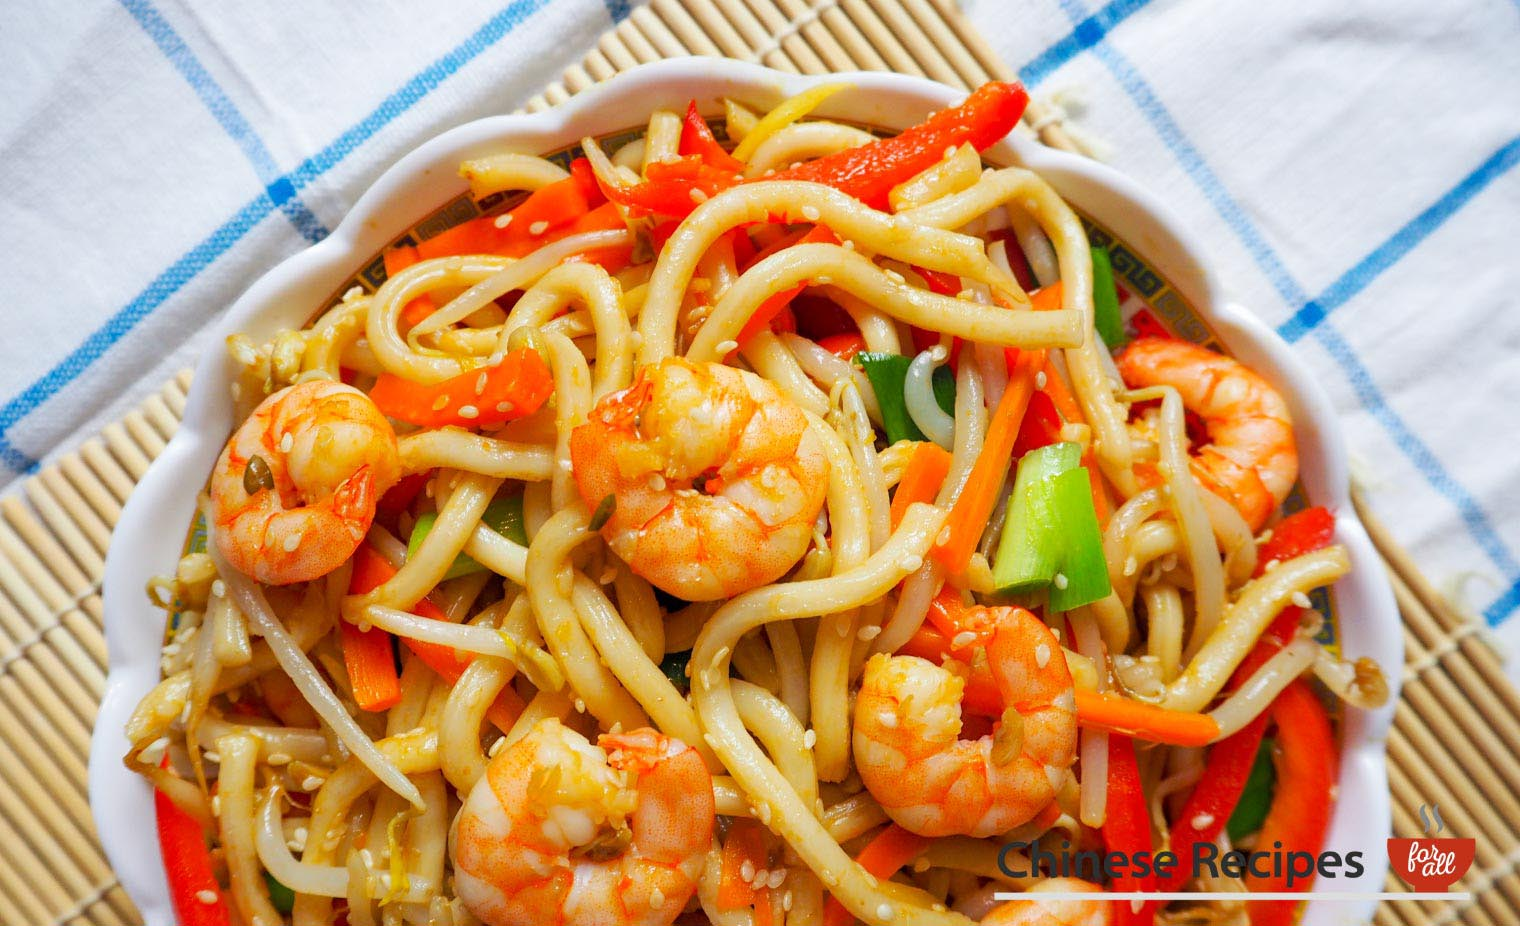 Fried King Prawn Udon Noodles with Ginger and Sesame Seeds - Chinese Recipes For All